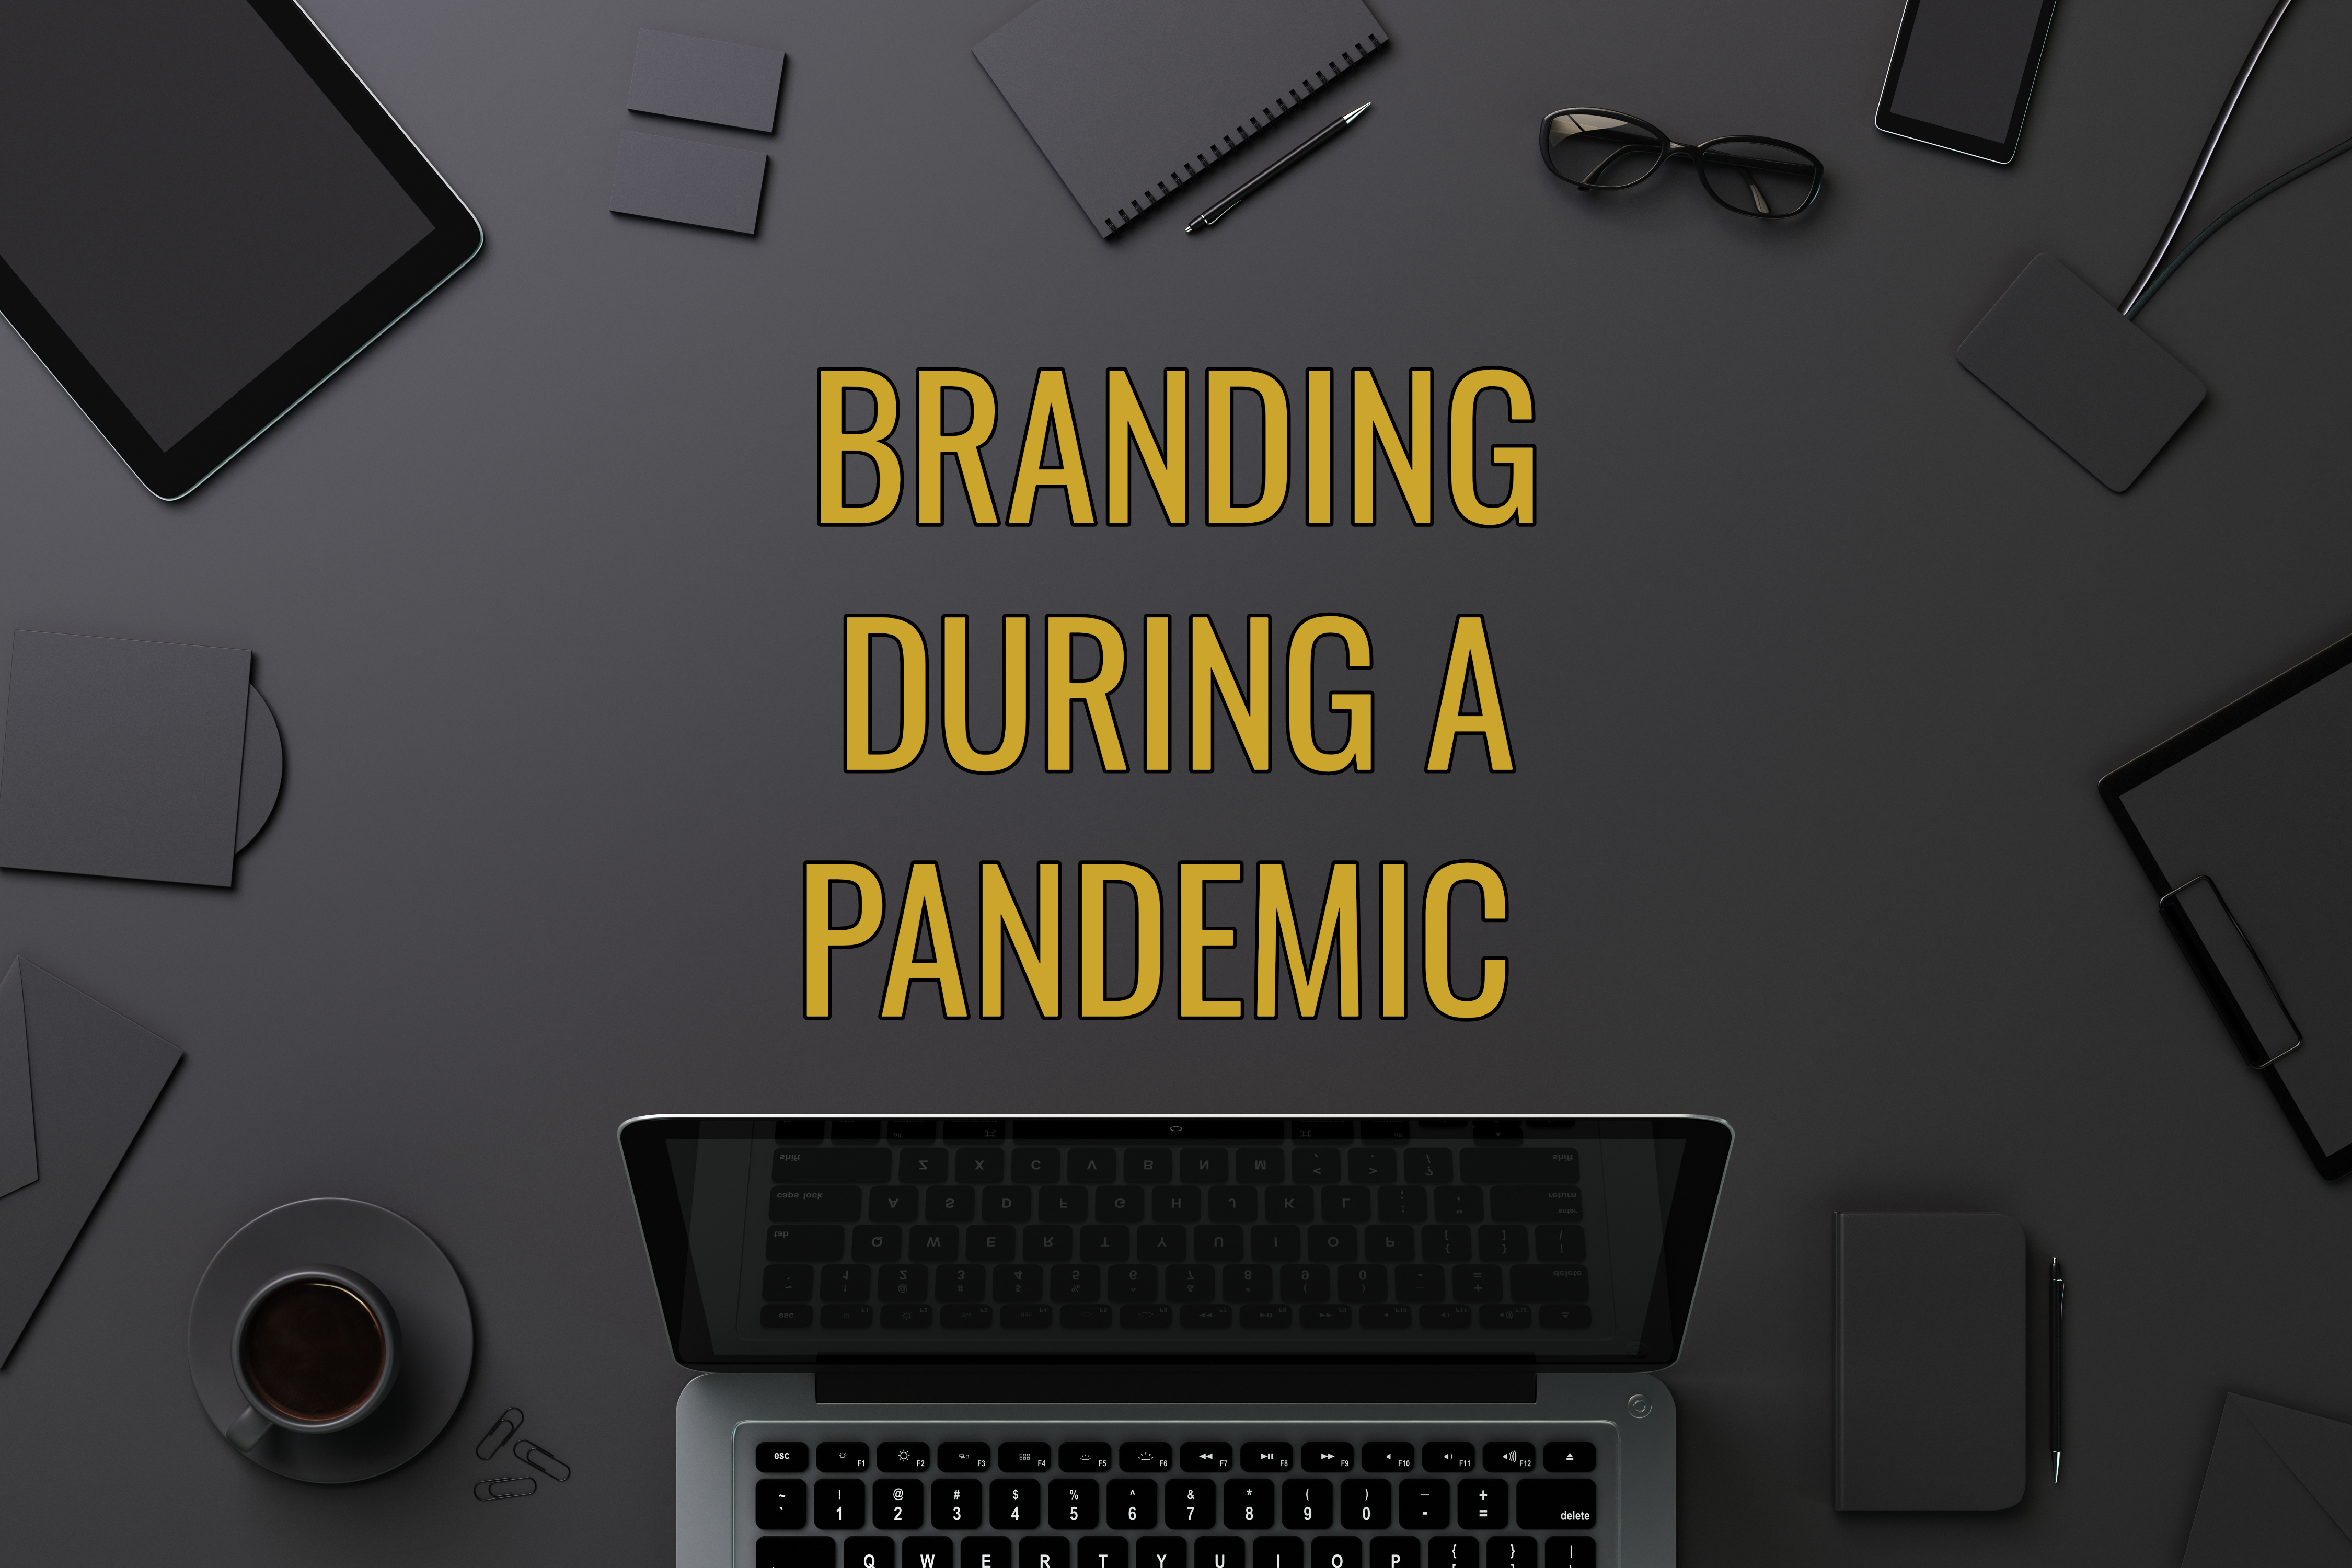 Branding During a Pandemic